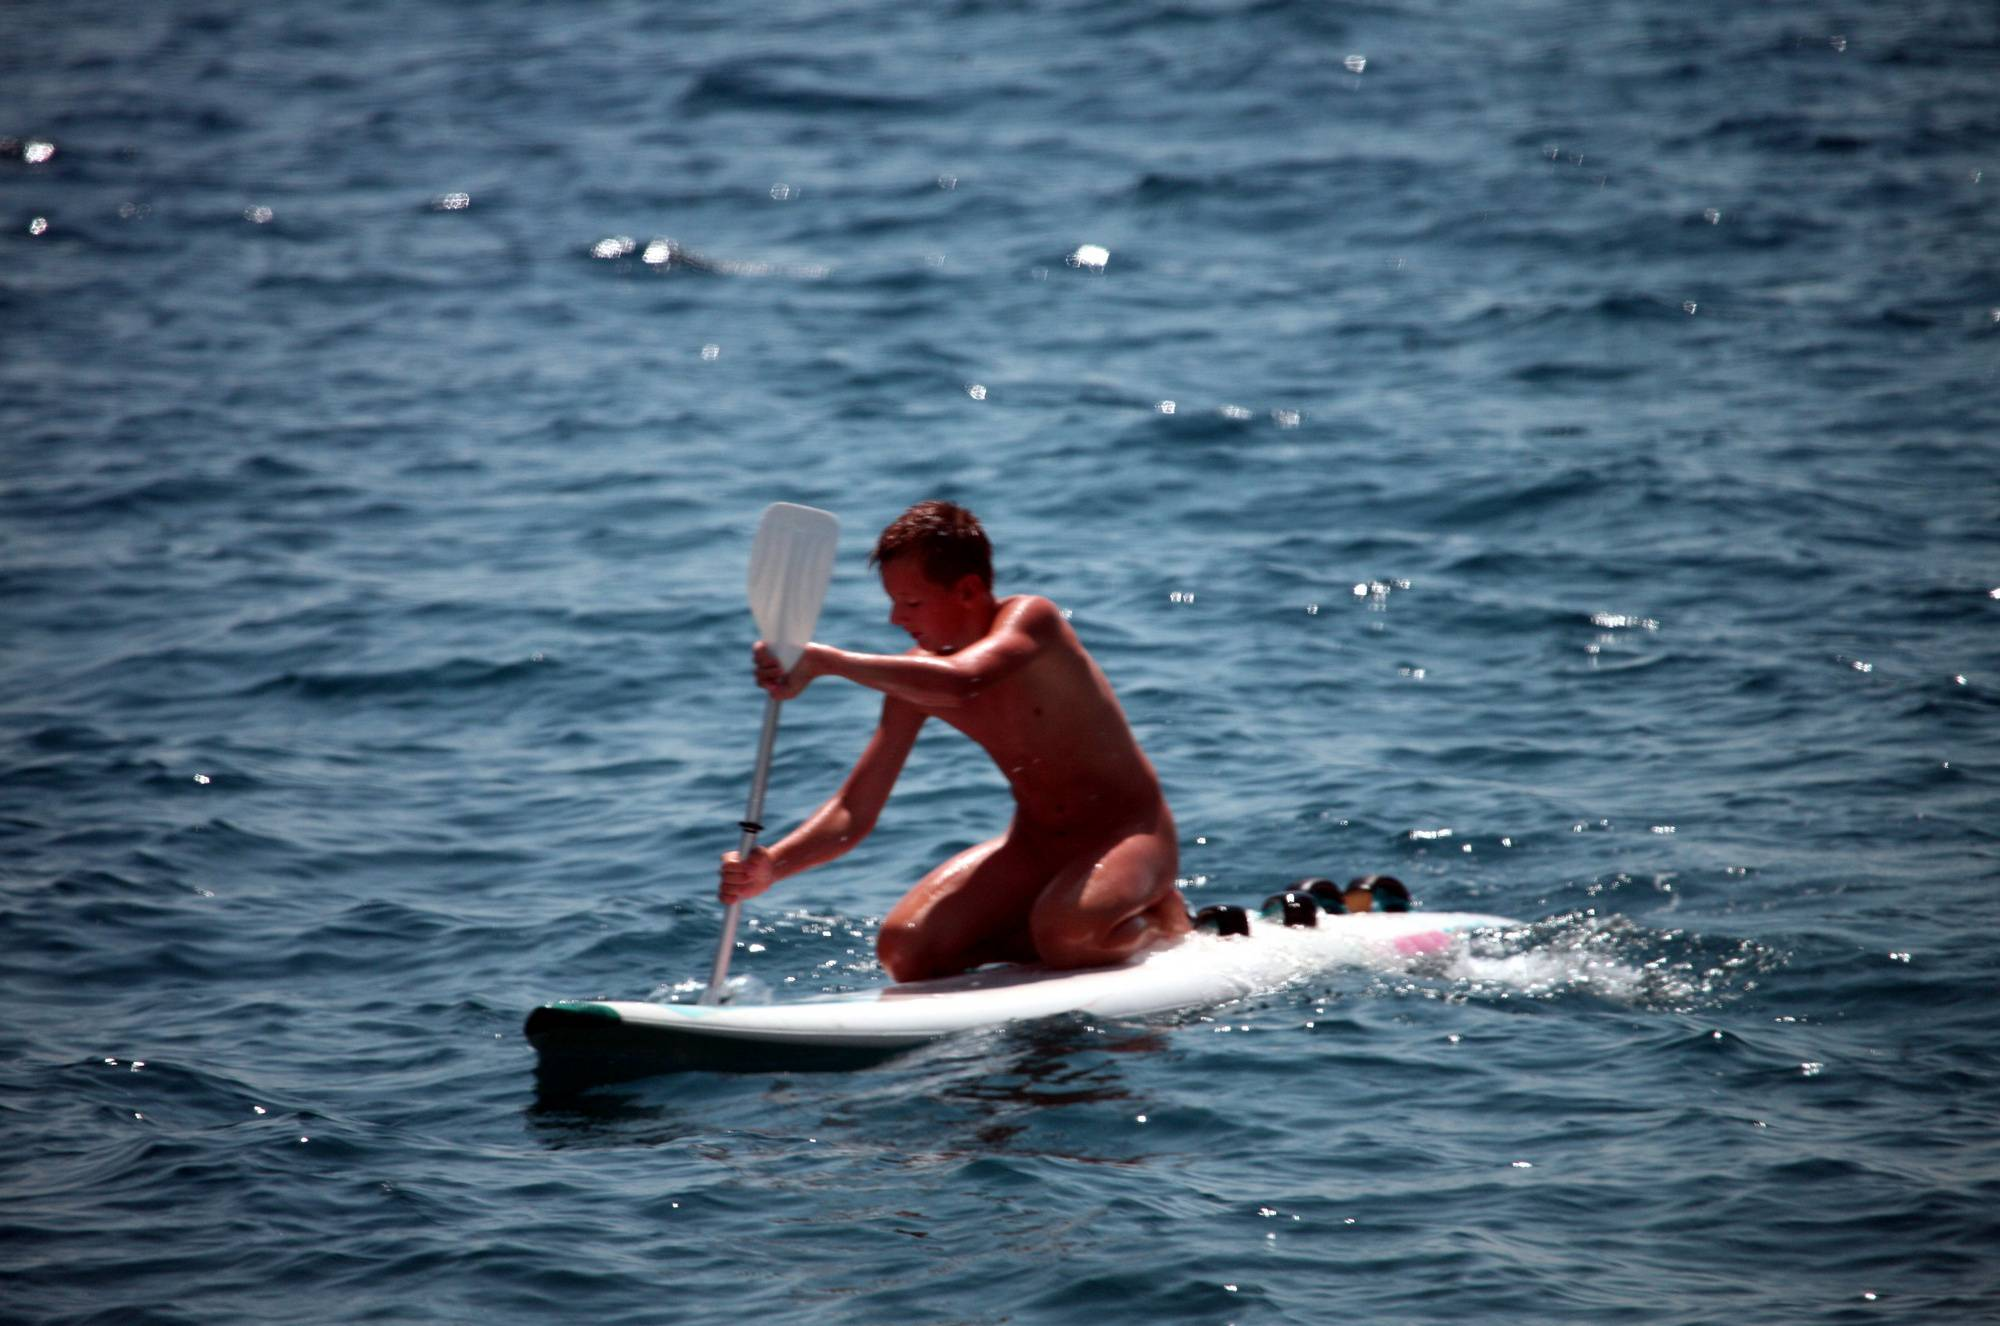 Nudist Gallery Boys Nudist Water Surfing - 2